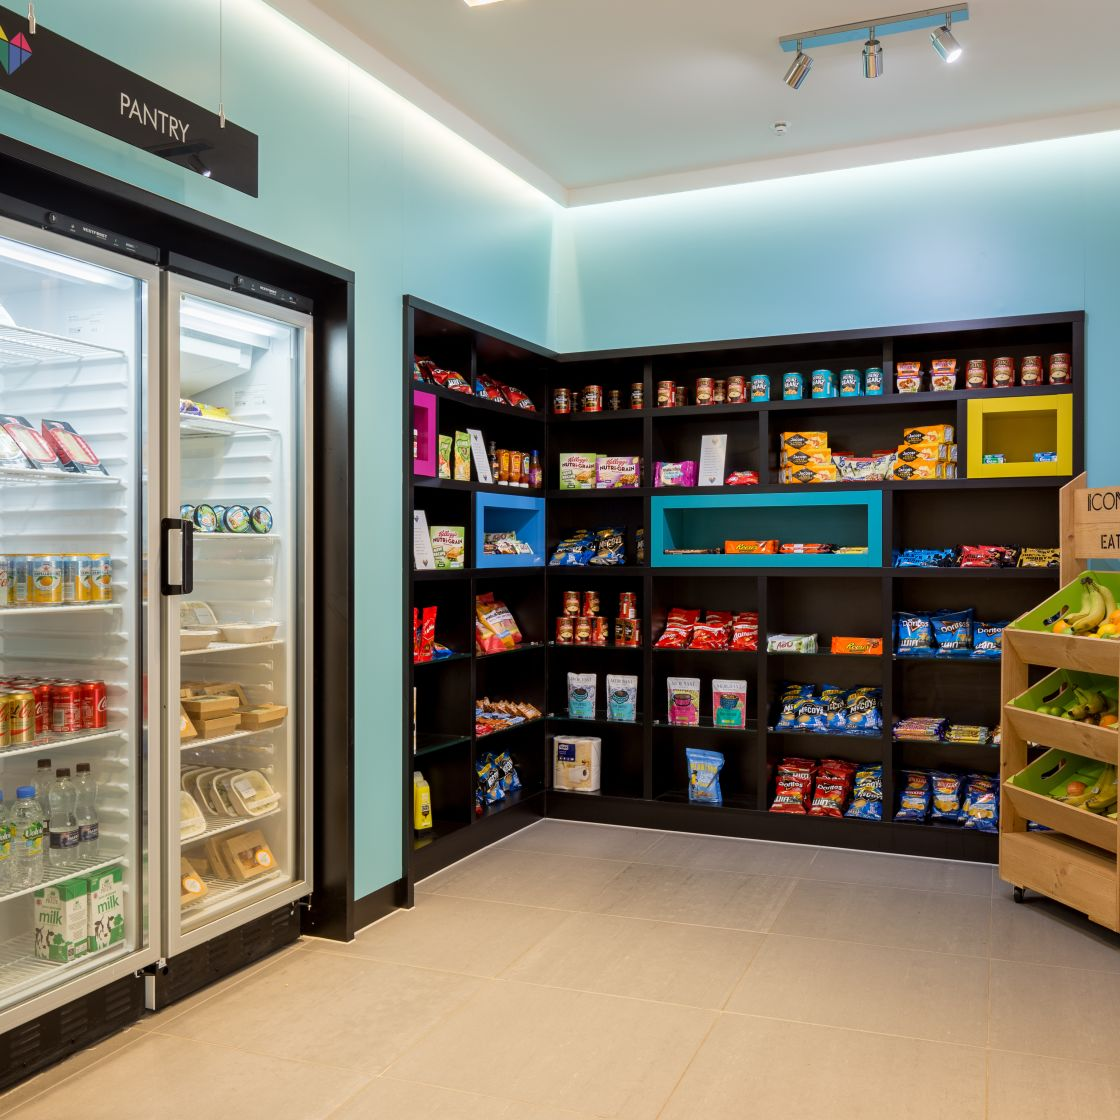 Pantry with shelved and refrigerated goods at IconInc, The Ascent. Student Accommodation in Liverpool